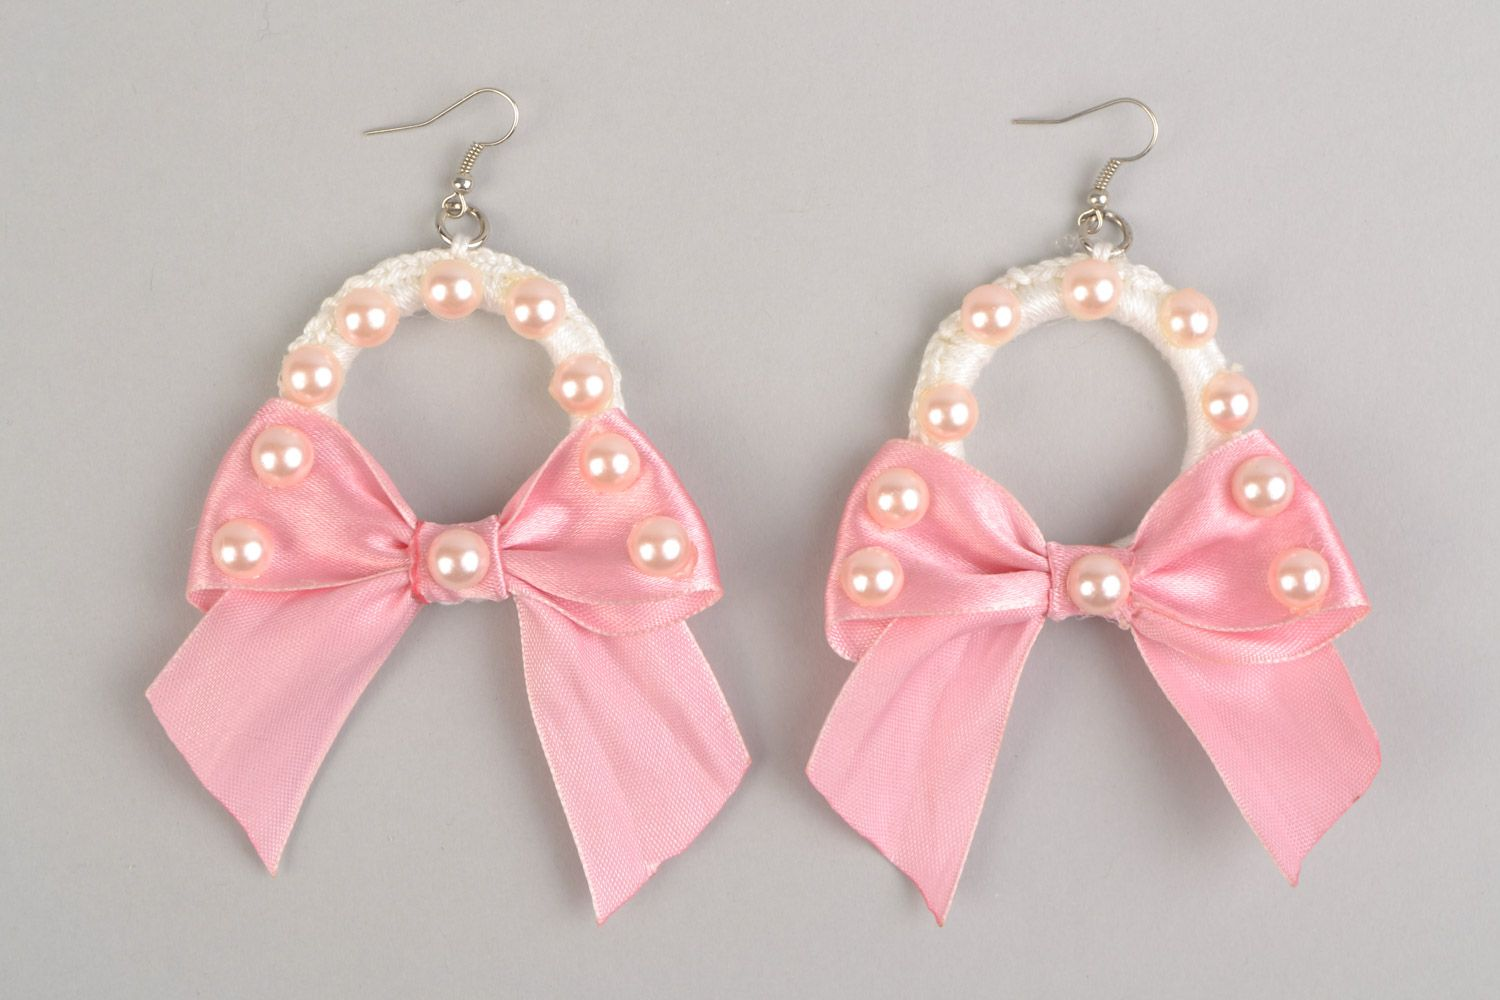 Braided earrings made of plastic rings and threads with pink ribbons present for girlfriend photo 2